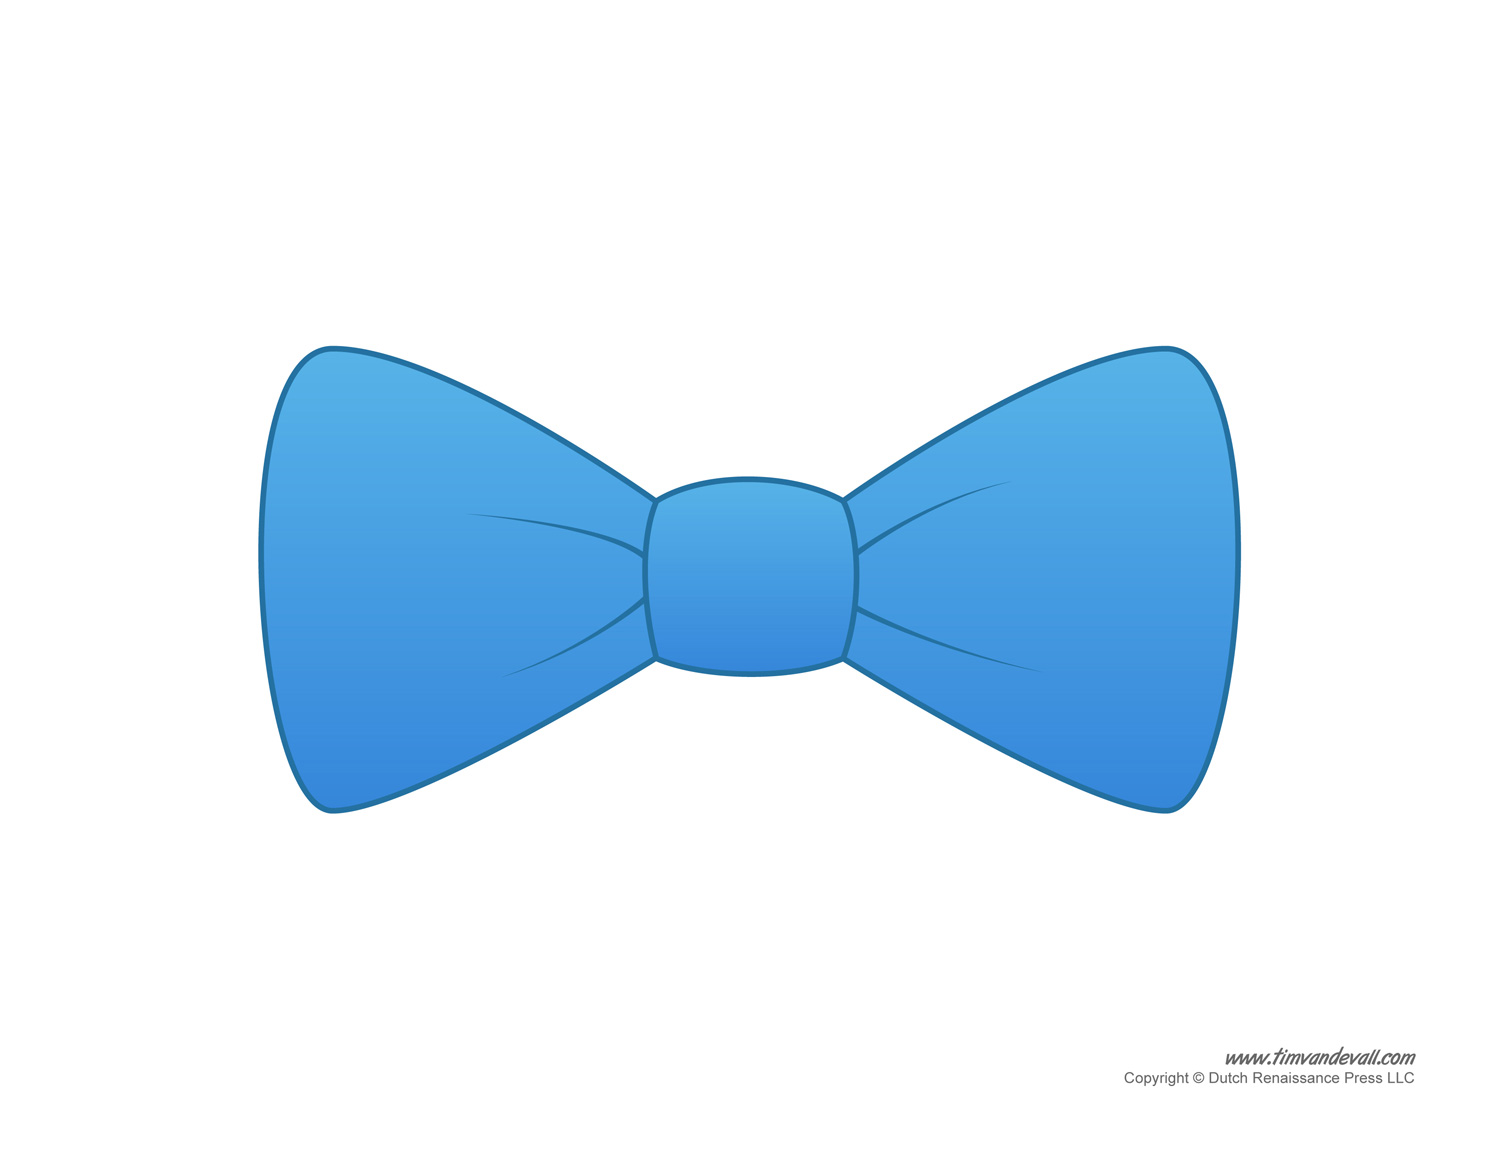 graphic relating to Bow Tie Printable named Paper Bow Tie Templates Bow Tie Printables